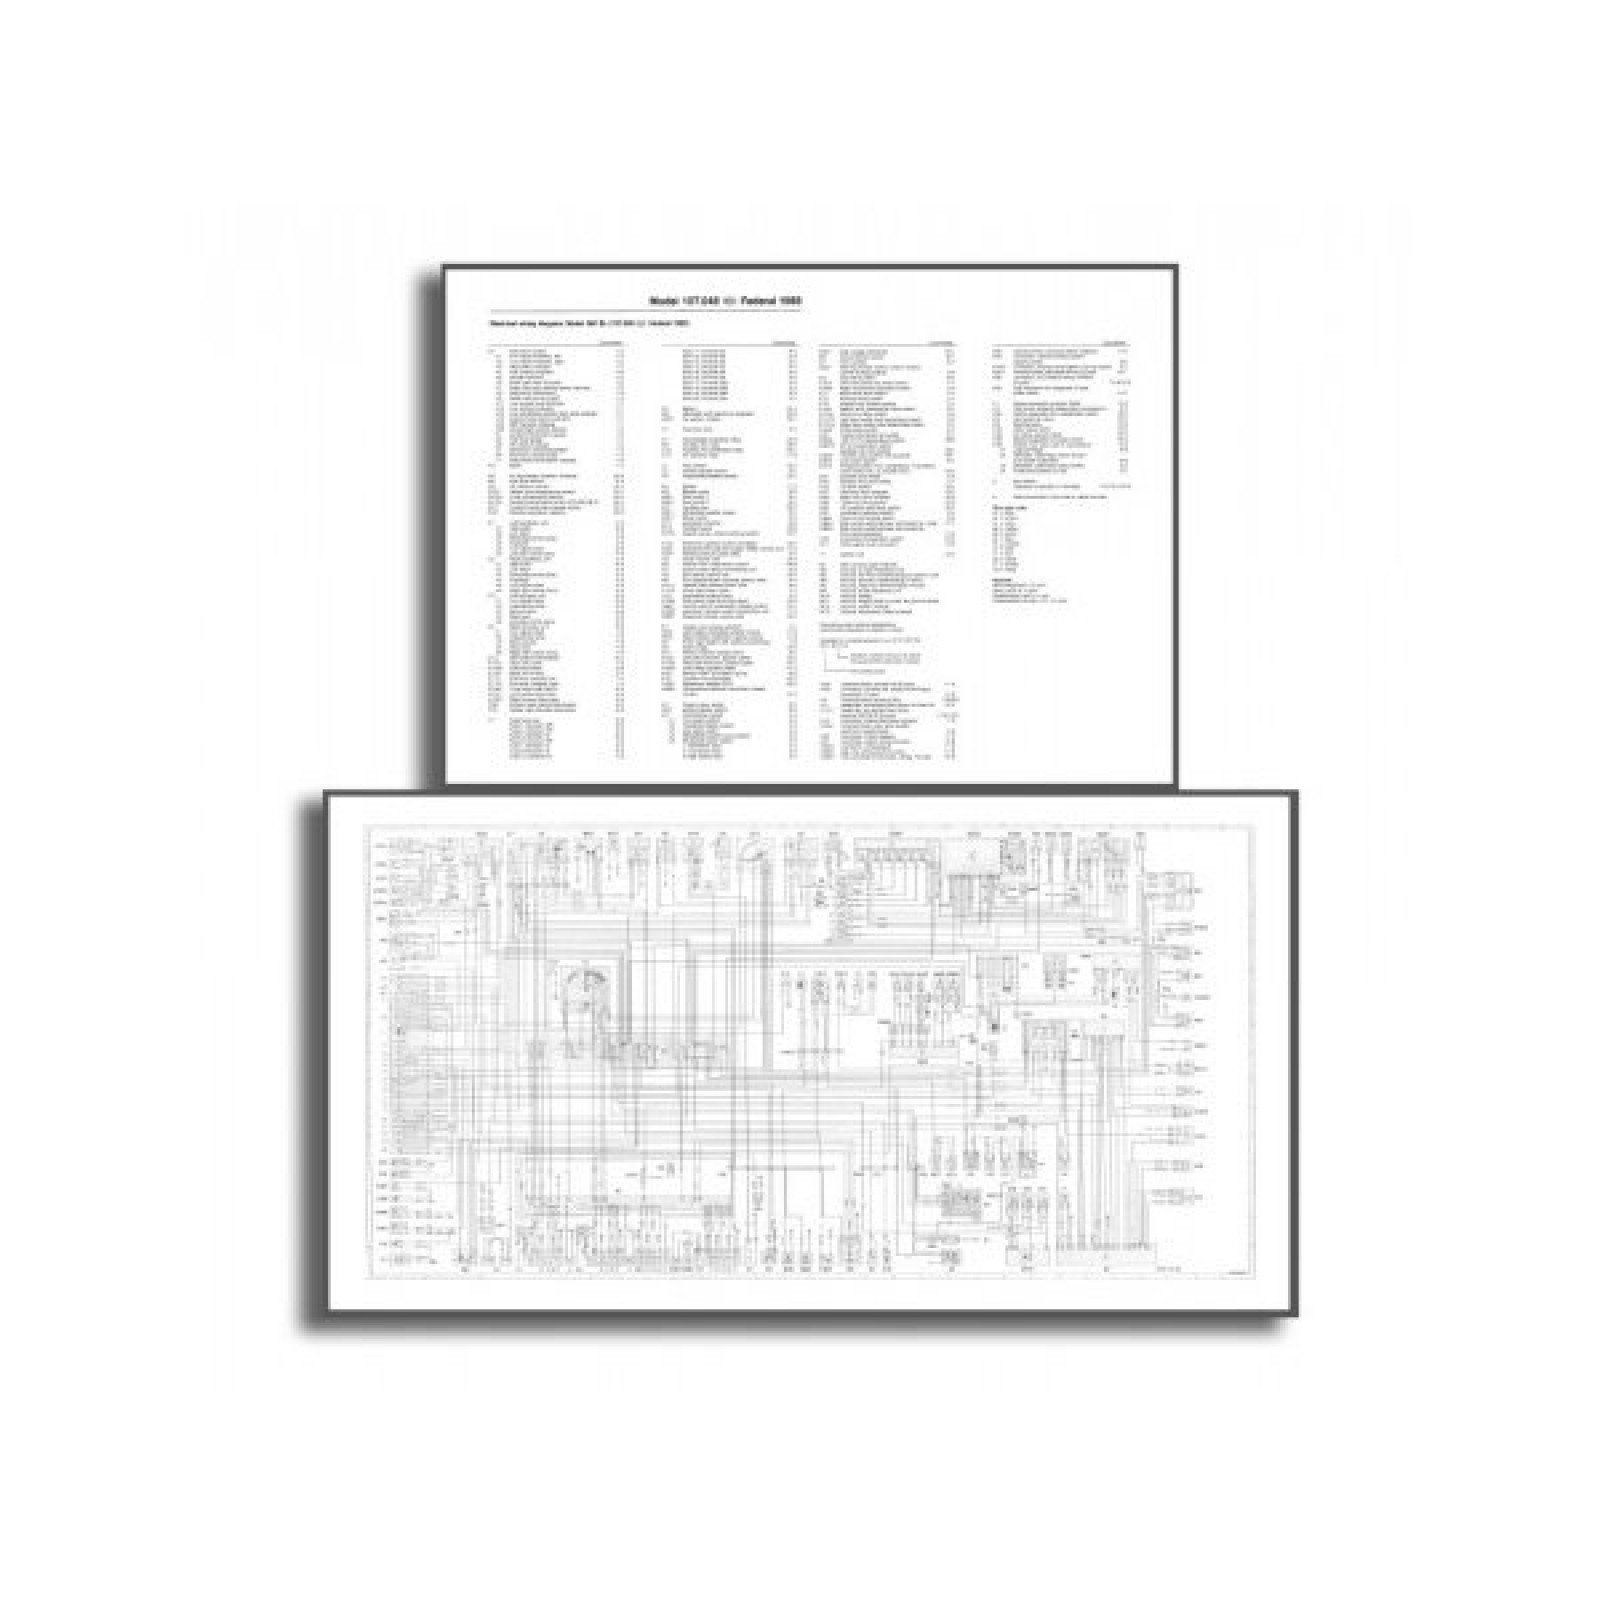 107.1114_1 mercedes benz sl 107 wiring diagram pdf download the sl shop 2015 Mercedes 500SL at panicattacktreatment.co